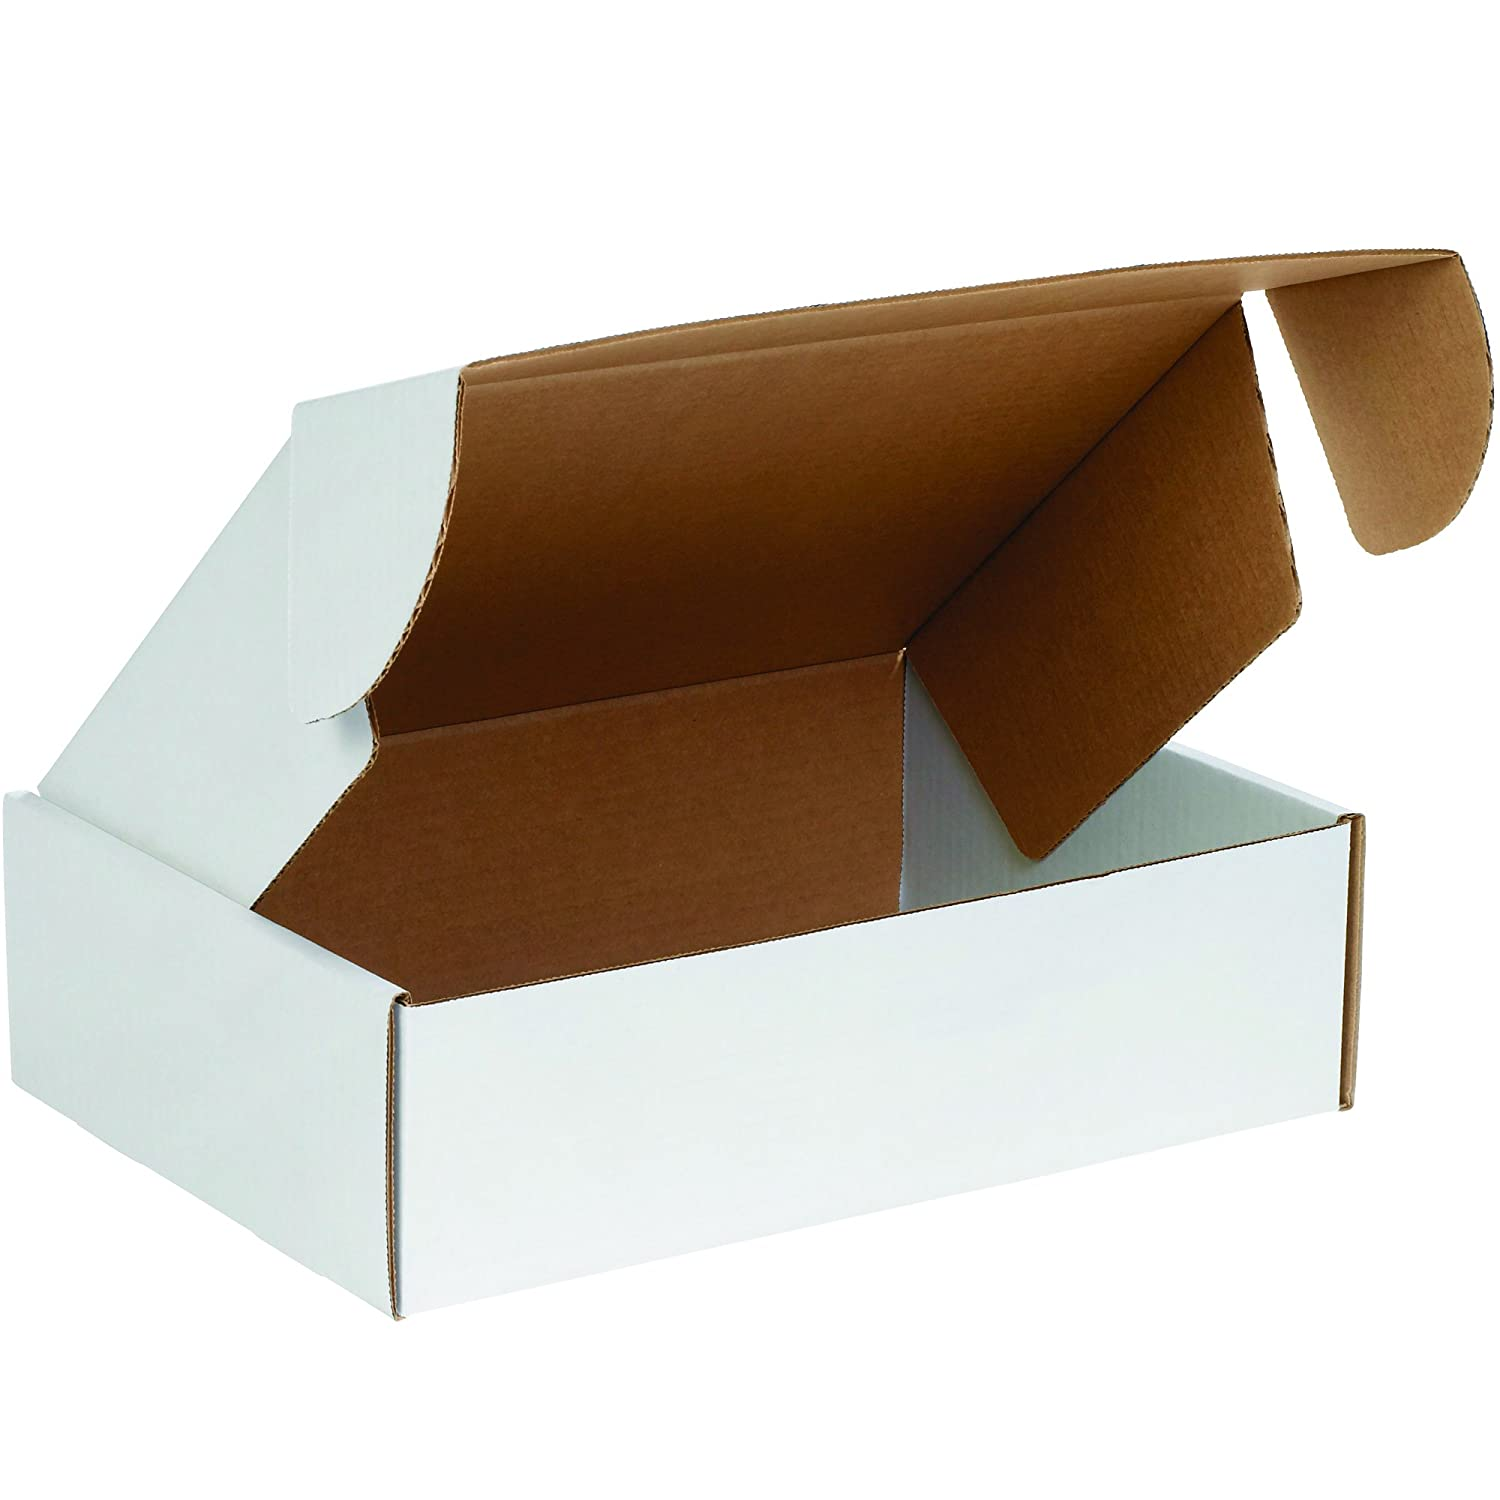 Boxes Inventory cleanup selling sale Fast BFMFL16124 Price reduction Deluxe Literature 16 x Mailers Cardboard